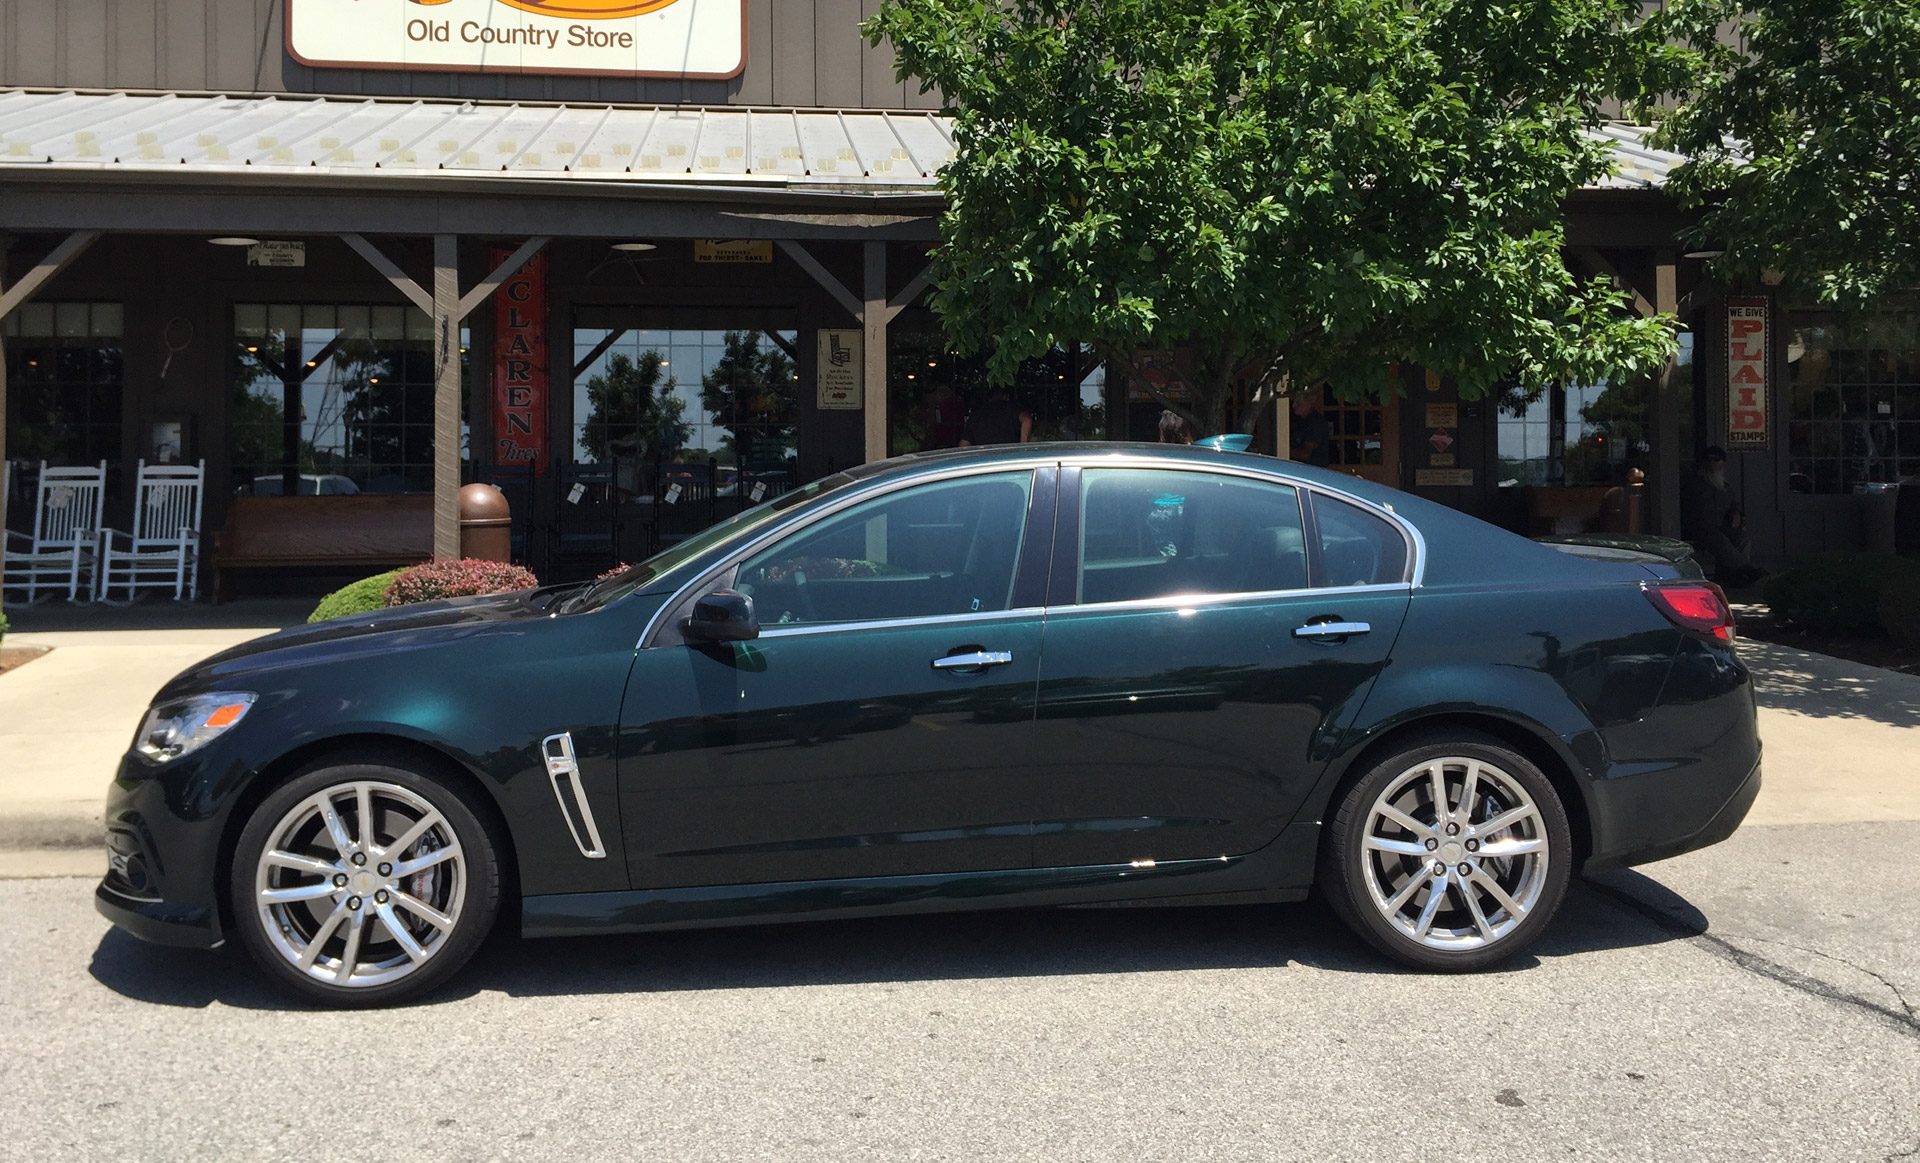 Notes from the driveway 2015 chevrolet ss publicscrutiny Gallery